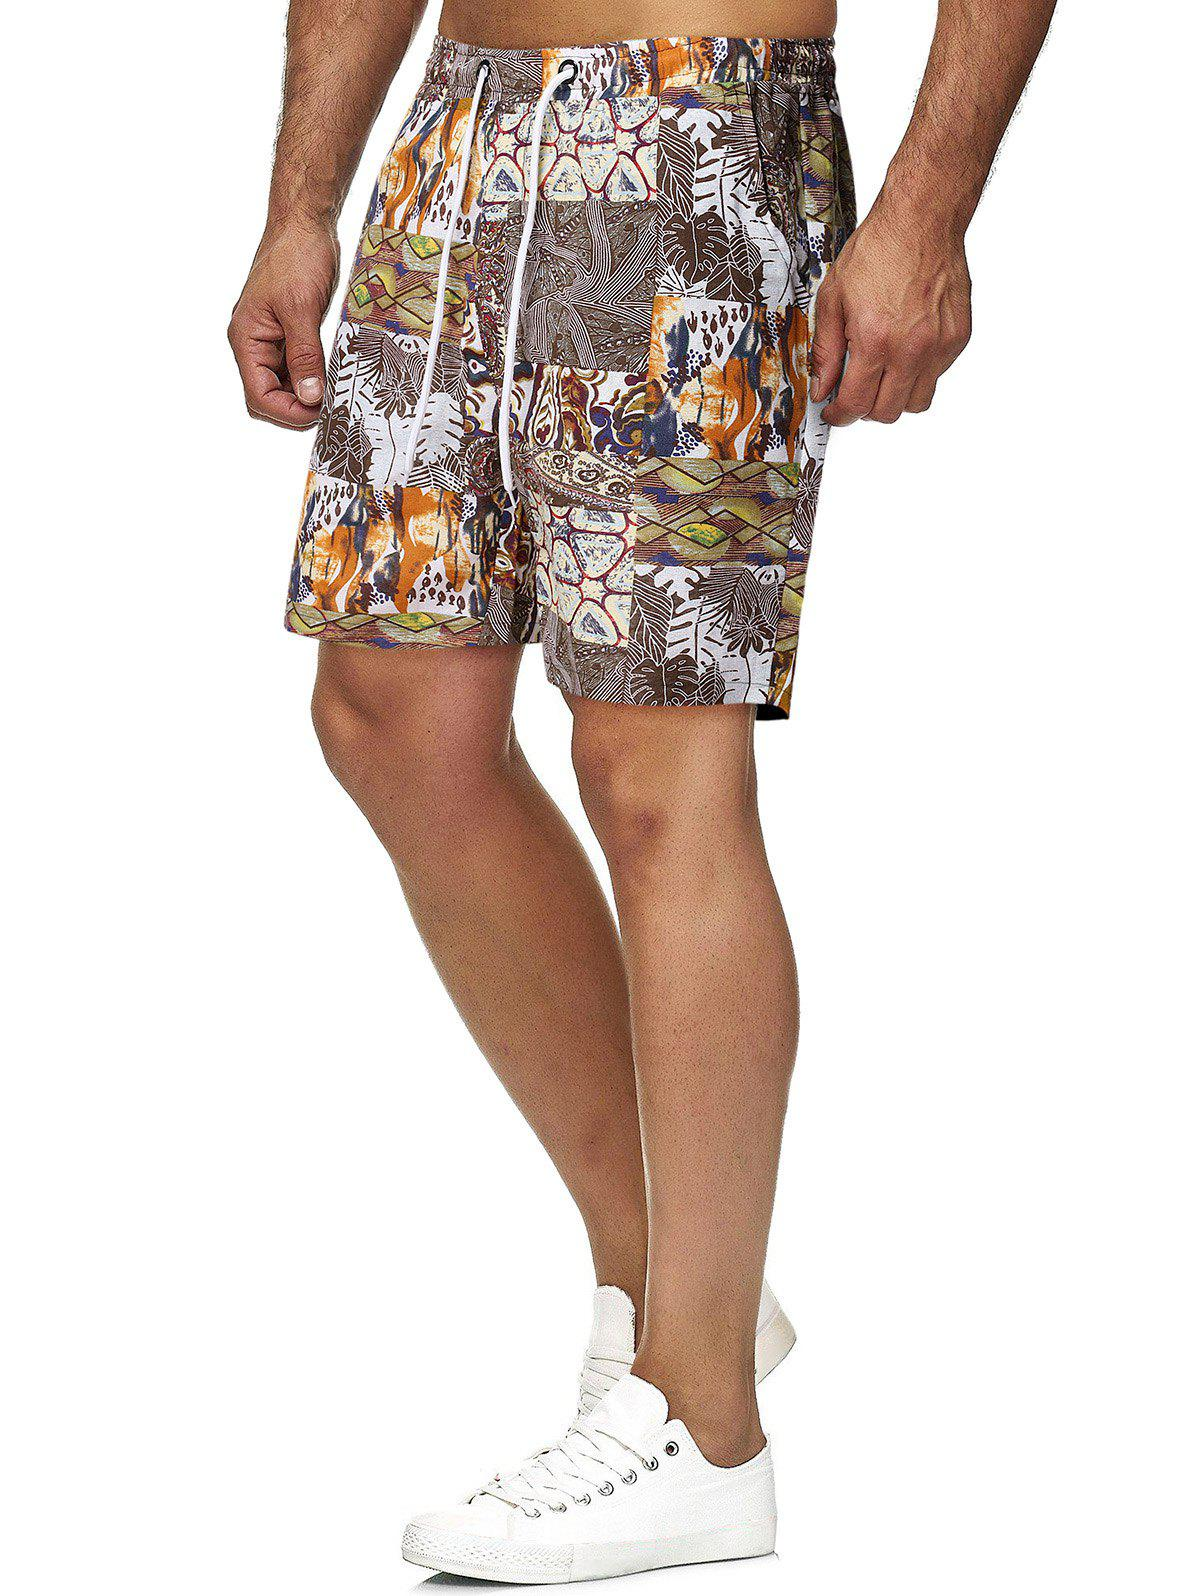 Short de Plage Graphique Plante Imprimé Multi 2XL